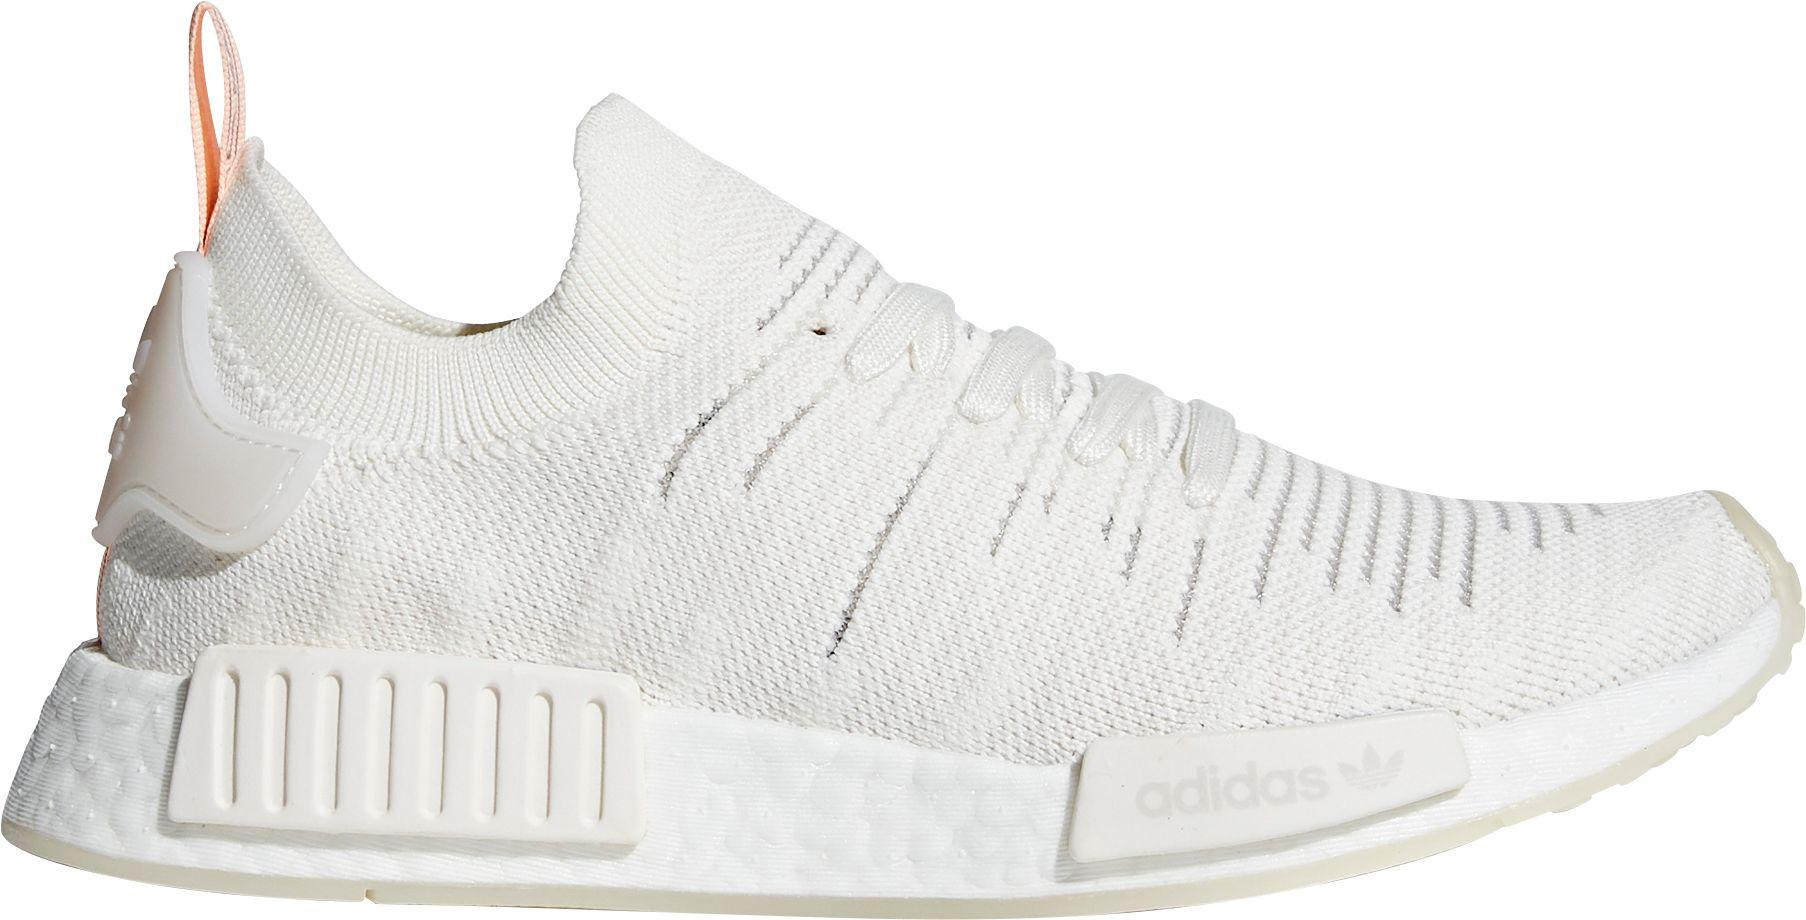 new product 17c24 9083a Adidas White Originals Nmd_r1 Stlt Primeknit Shoes